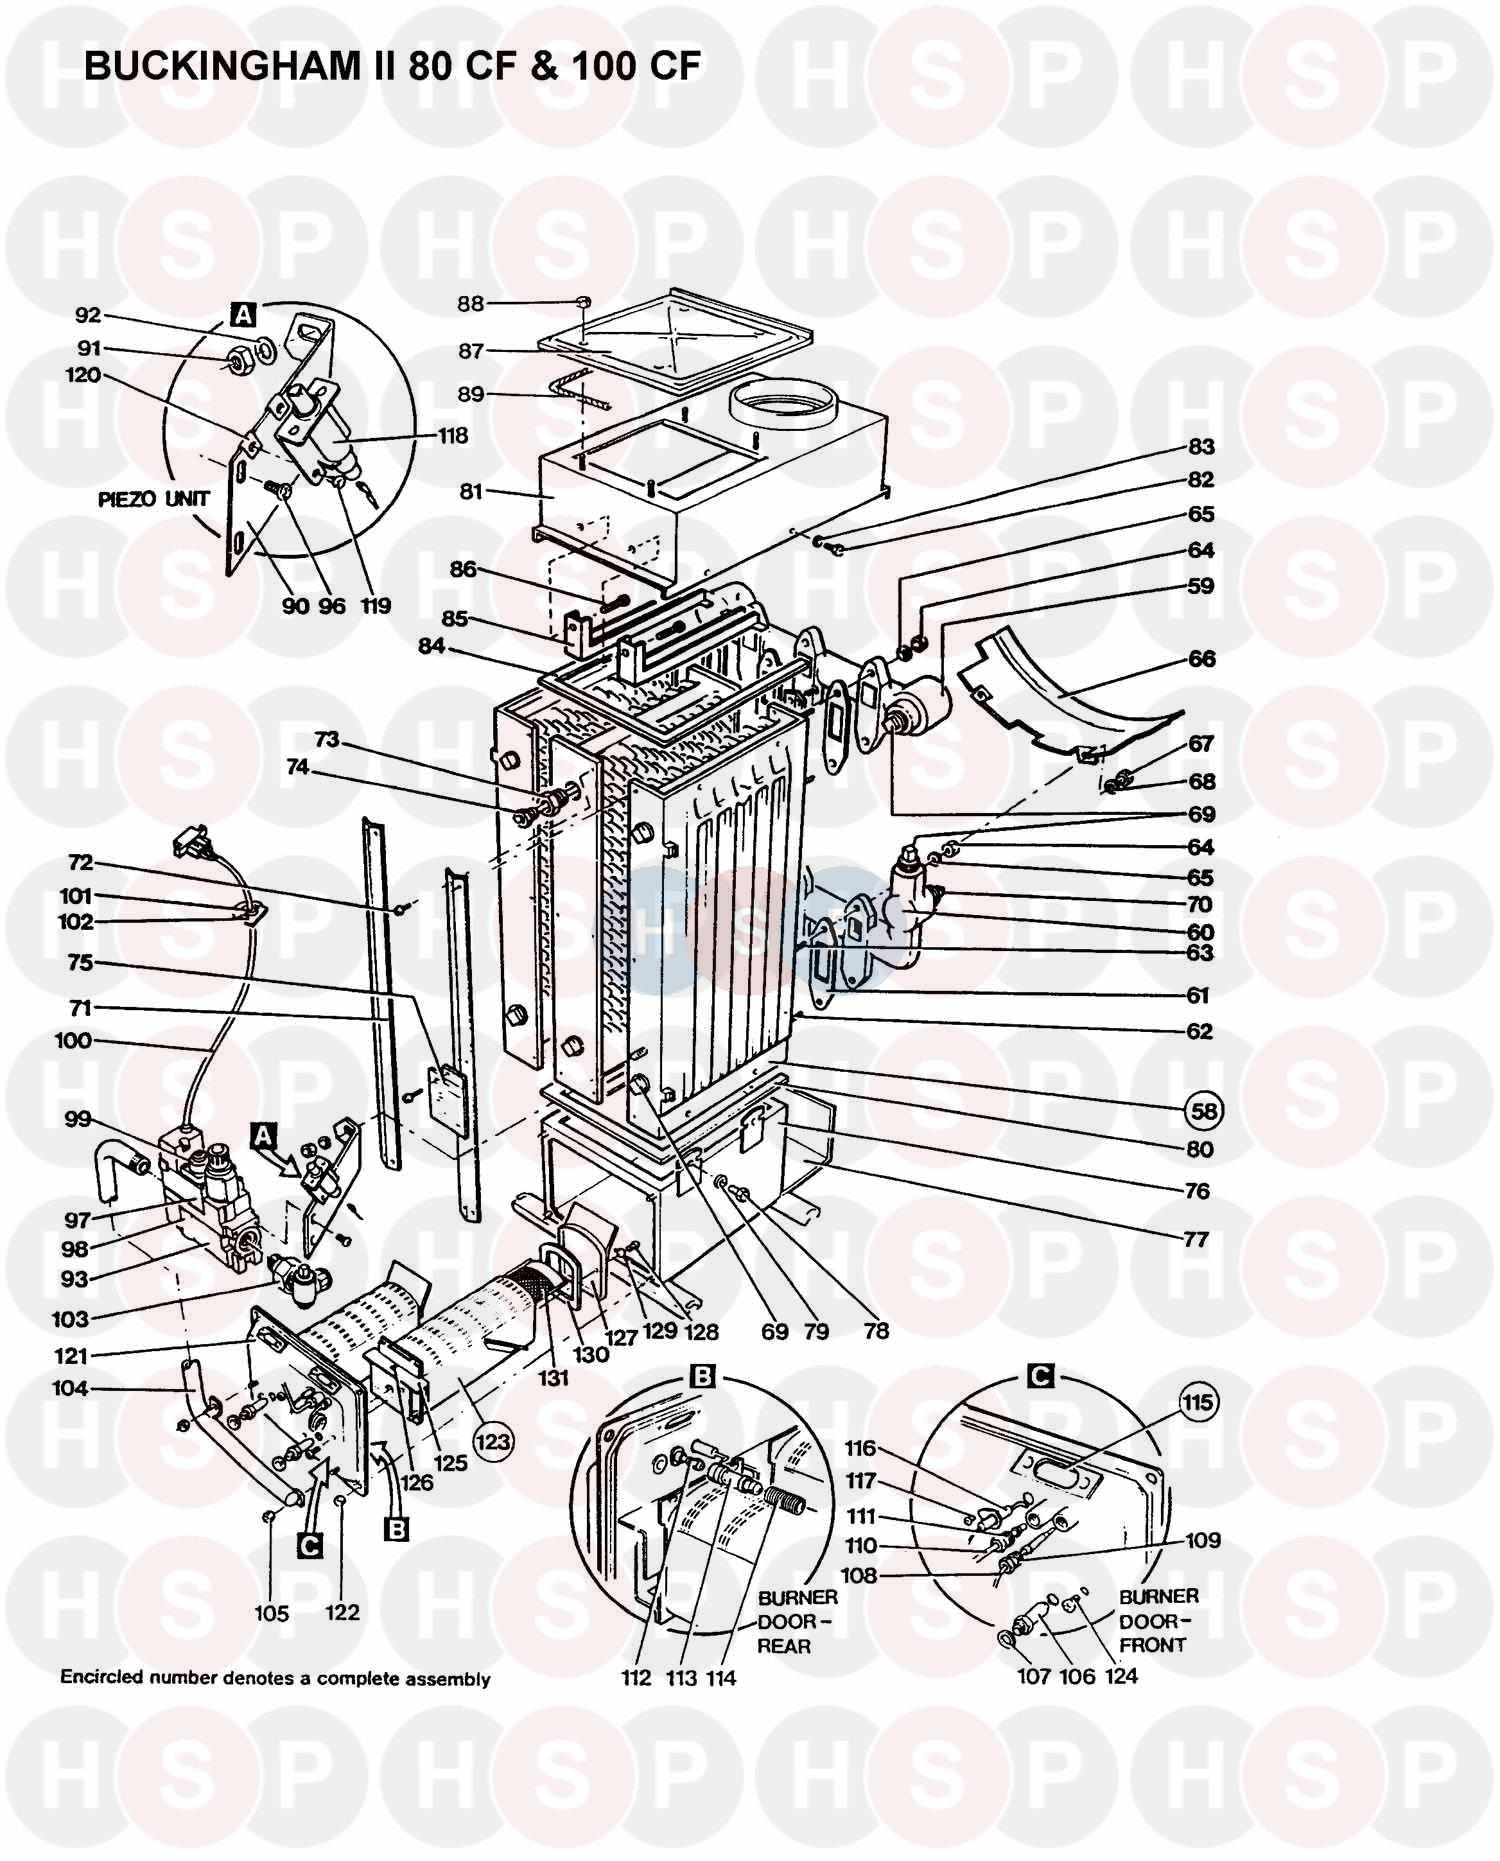 3 Phase Wiring Diagrams 460 Volt Strip Heat 480 Volt 3